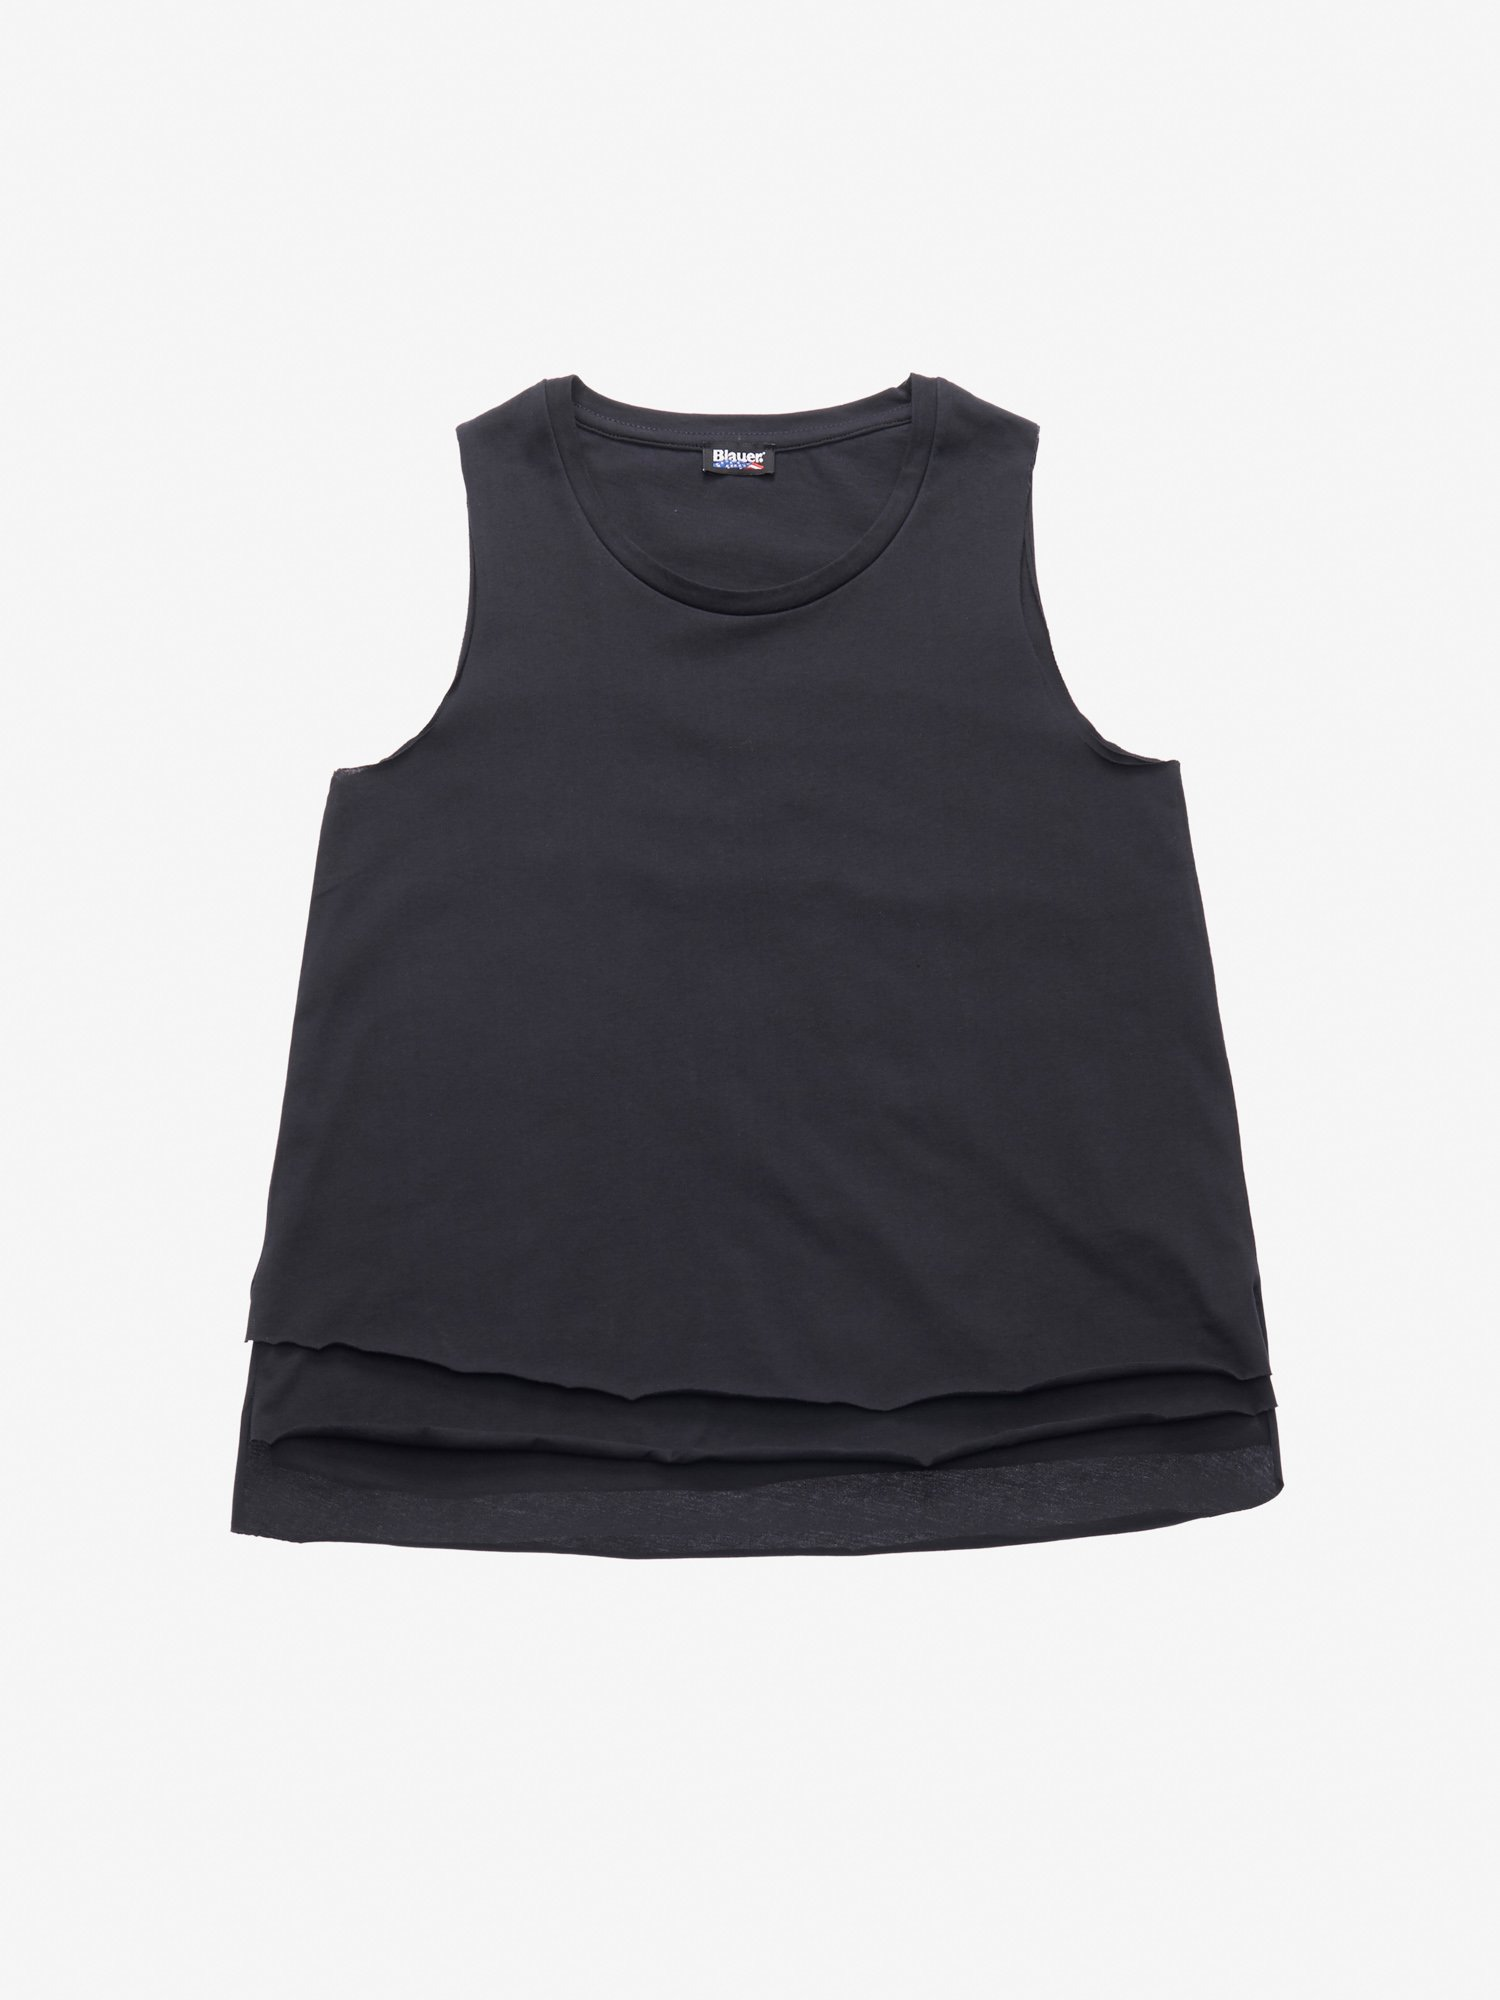 DOUBLE COTTON TANK TOP - Blauer